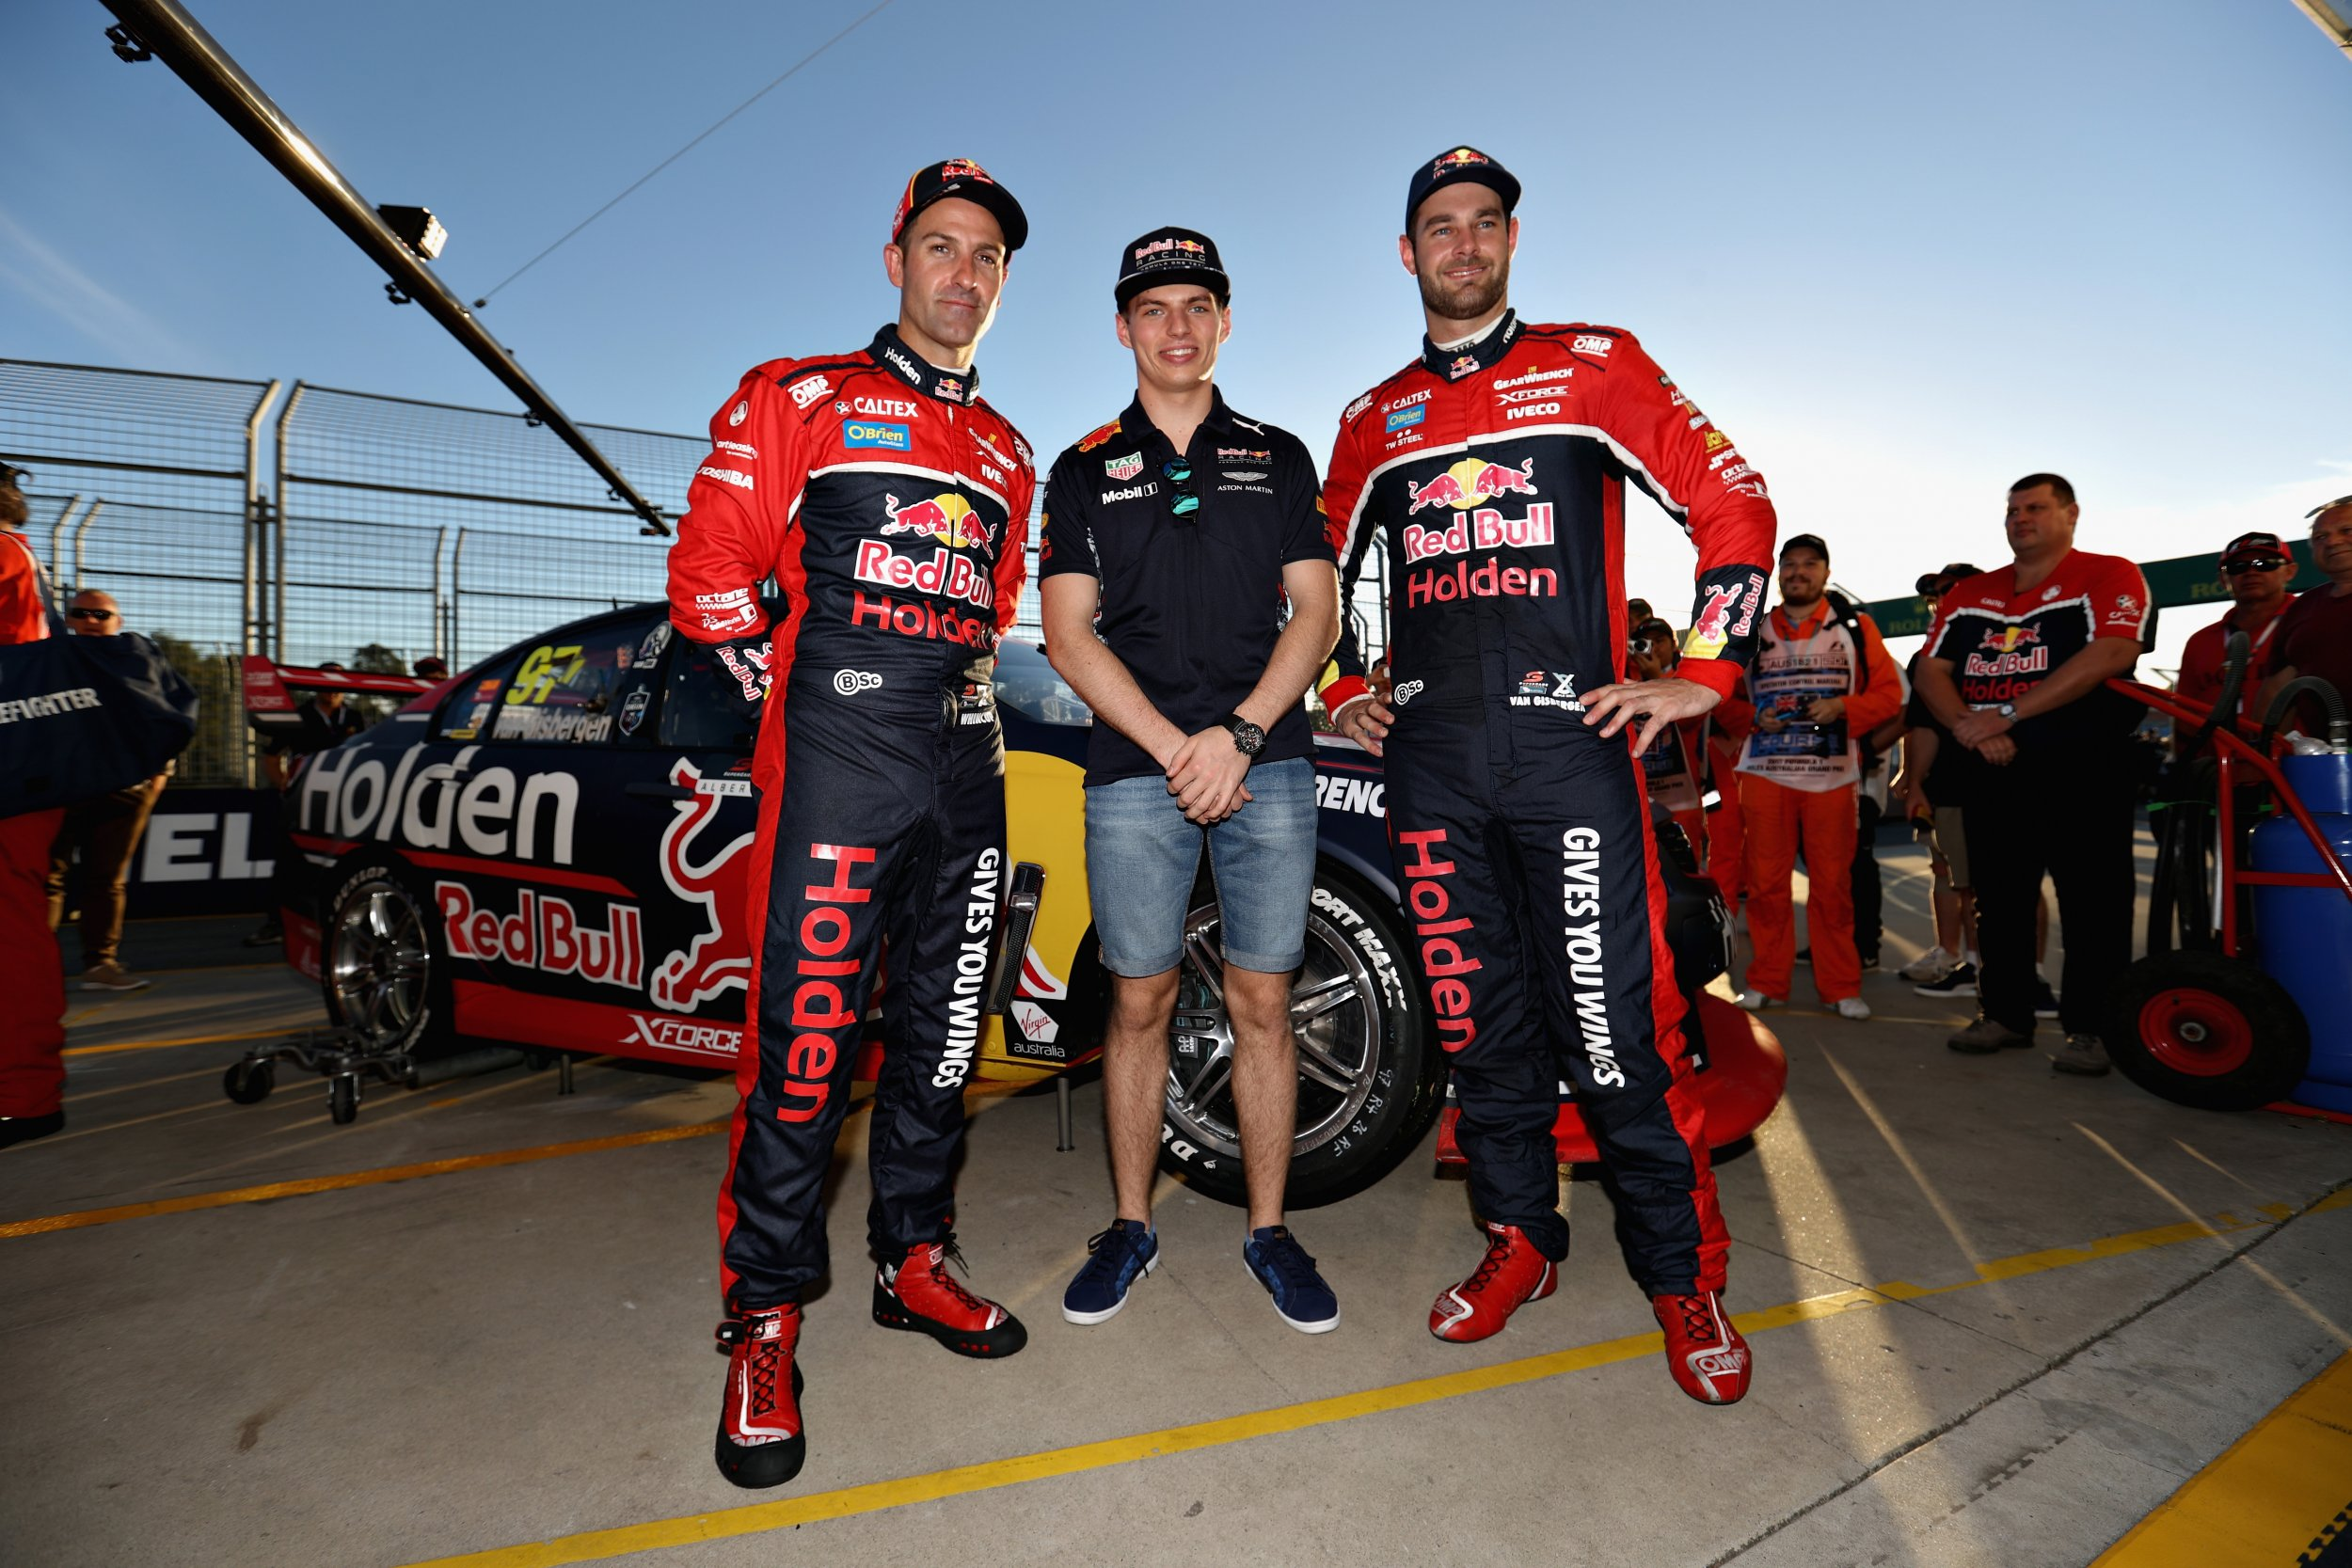 Red Bull Formula One driver Max Verstappen, center.